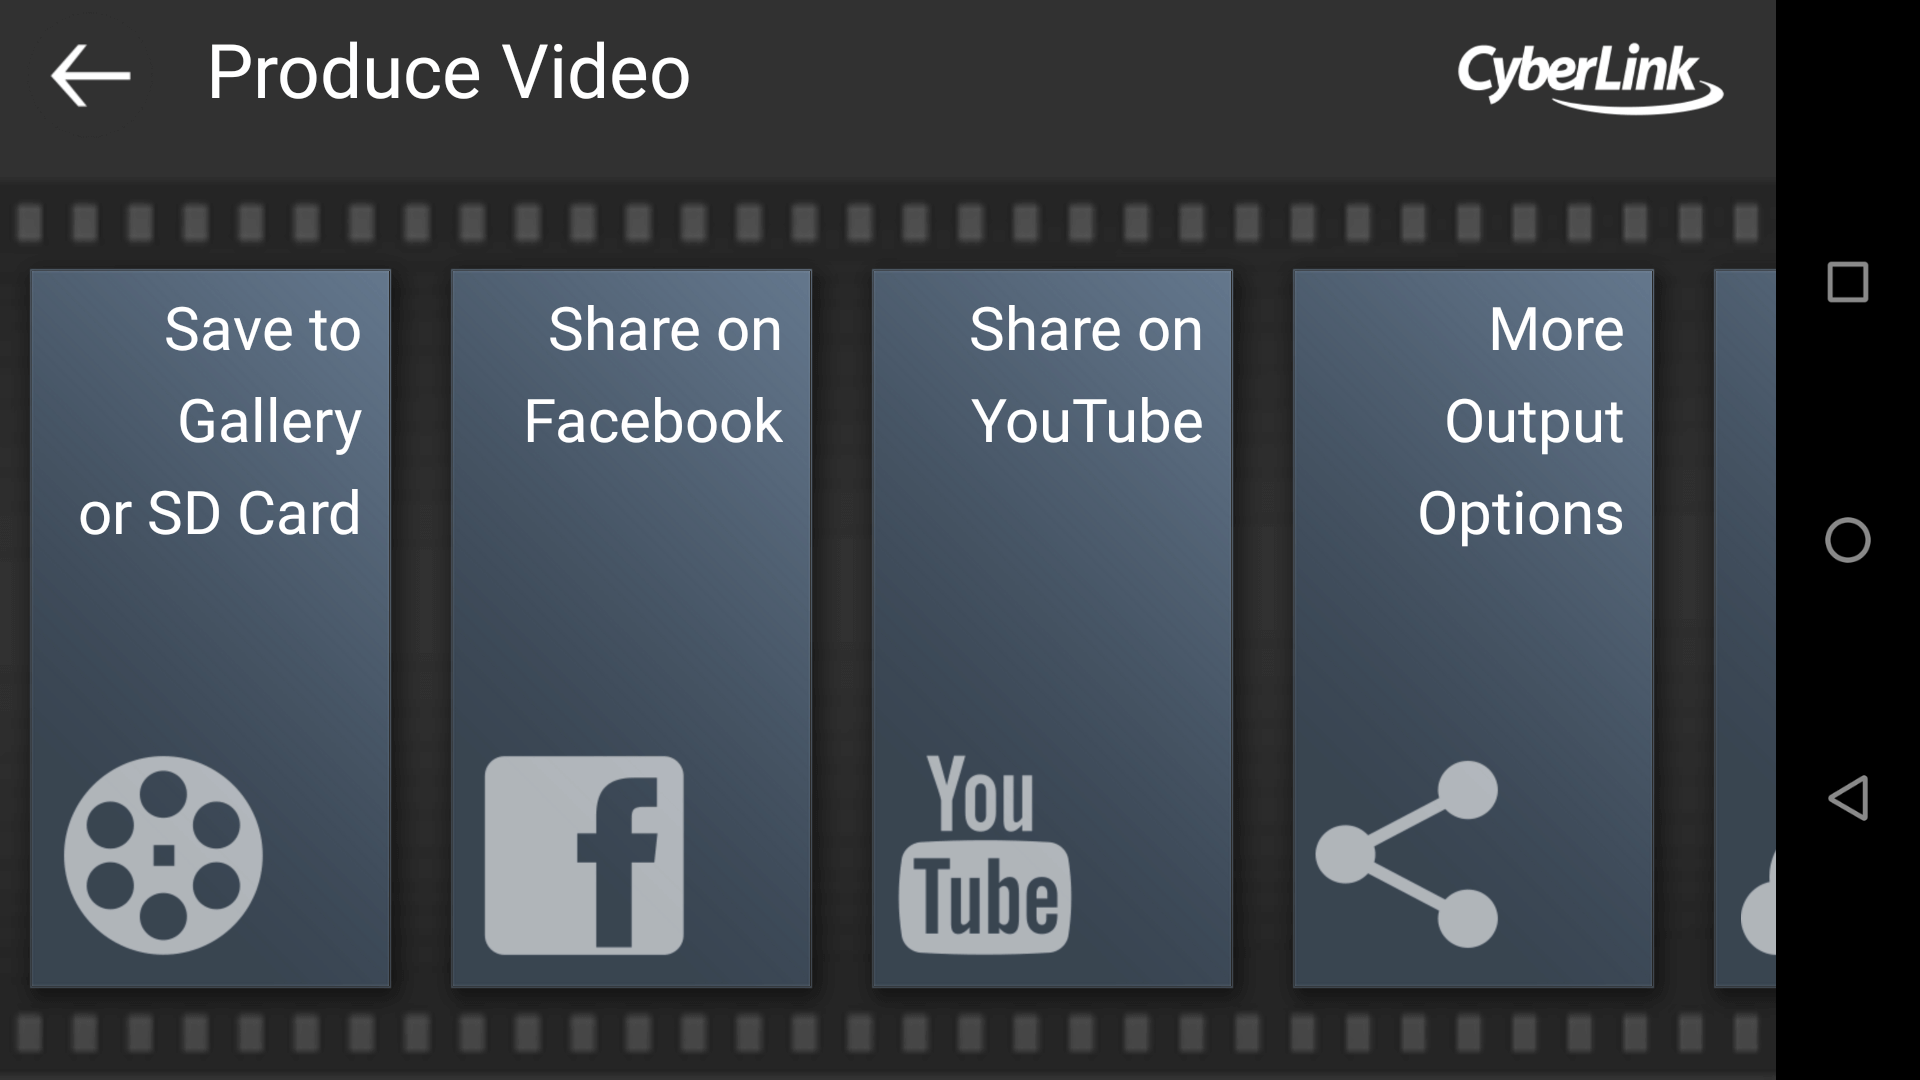 Export your video with an intro video using PowerDirector for Android.